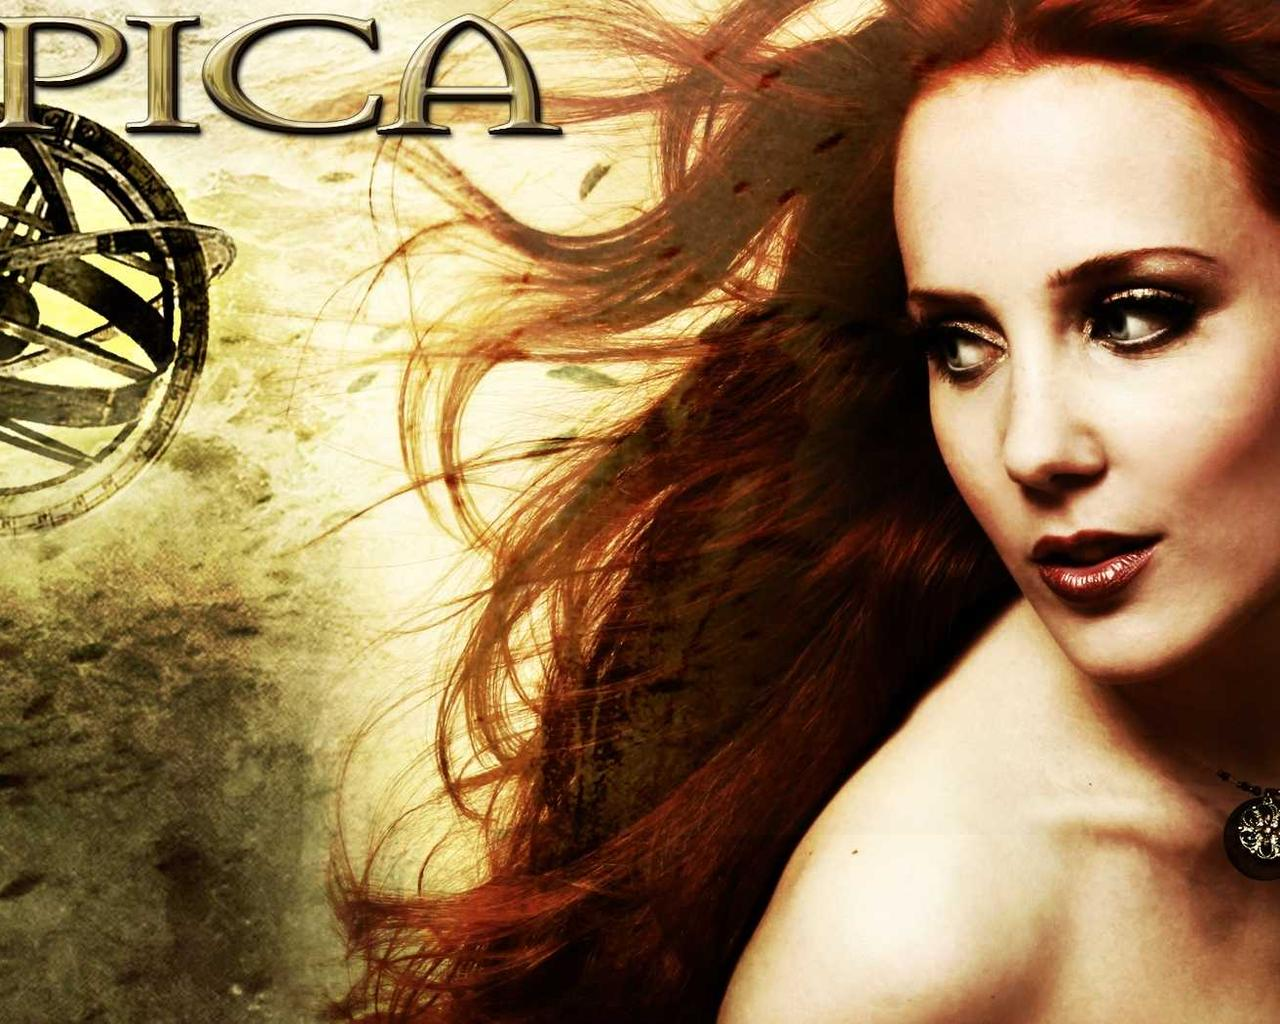 simone simons wallpaper 1280x1024